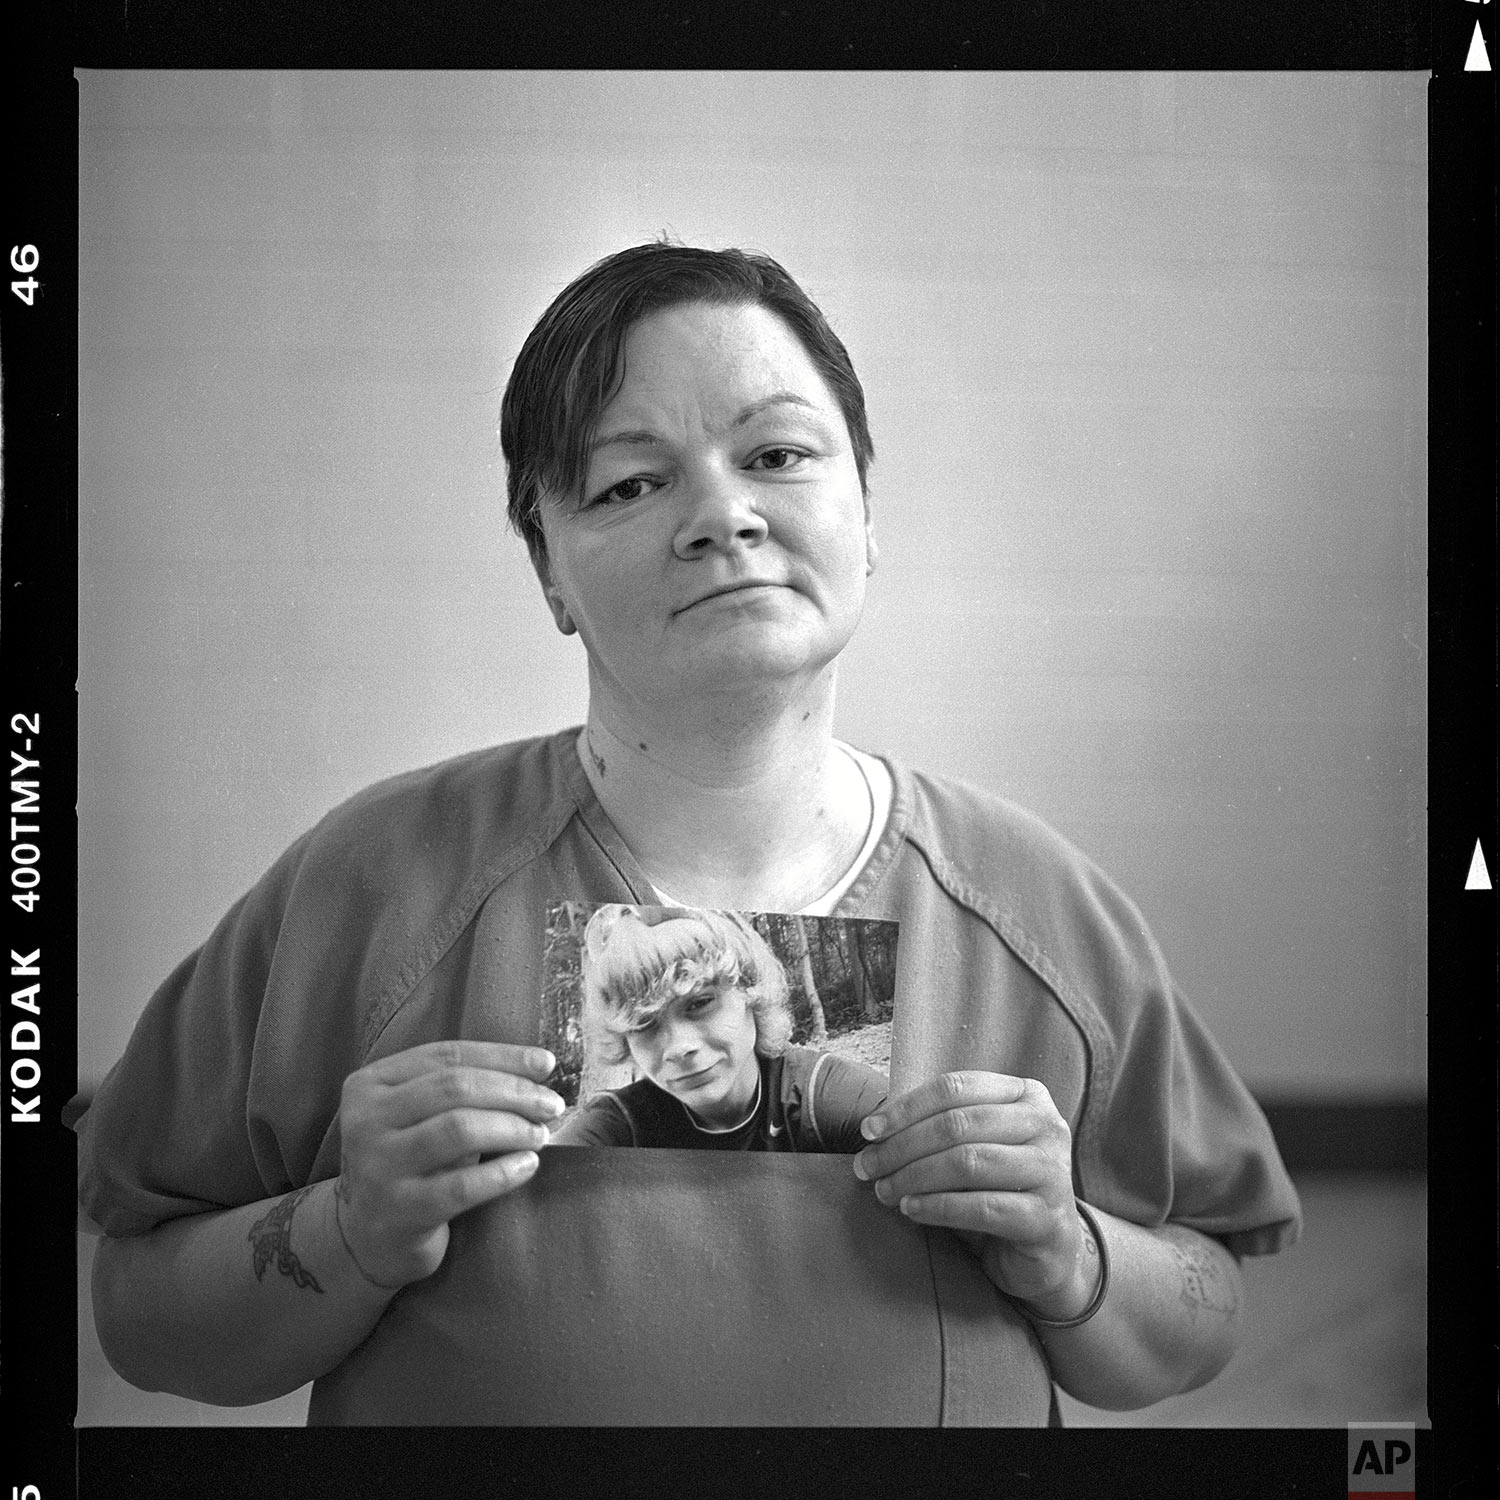 """Mary Sammons, age 41, holds a picture of her son, Micah, 20, who was murdered March 23, as she is photographed in her cell at the Campbell County Jail in Jacksboro, Tenn., Wednesday, April 18, 2018. Sammons suspects her son's murder was drug-related. """"I always pictured my kids burying me, not me having to bury my children. Young kids are losing their life over bad dope. This is crazy. It's so not worth it. He was a pretty boy. He was beautiful.""""(AP Photo/David Goldman)"""